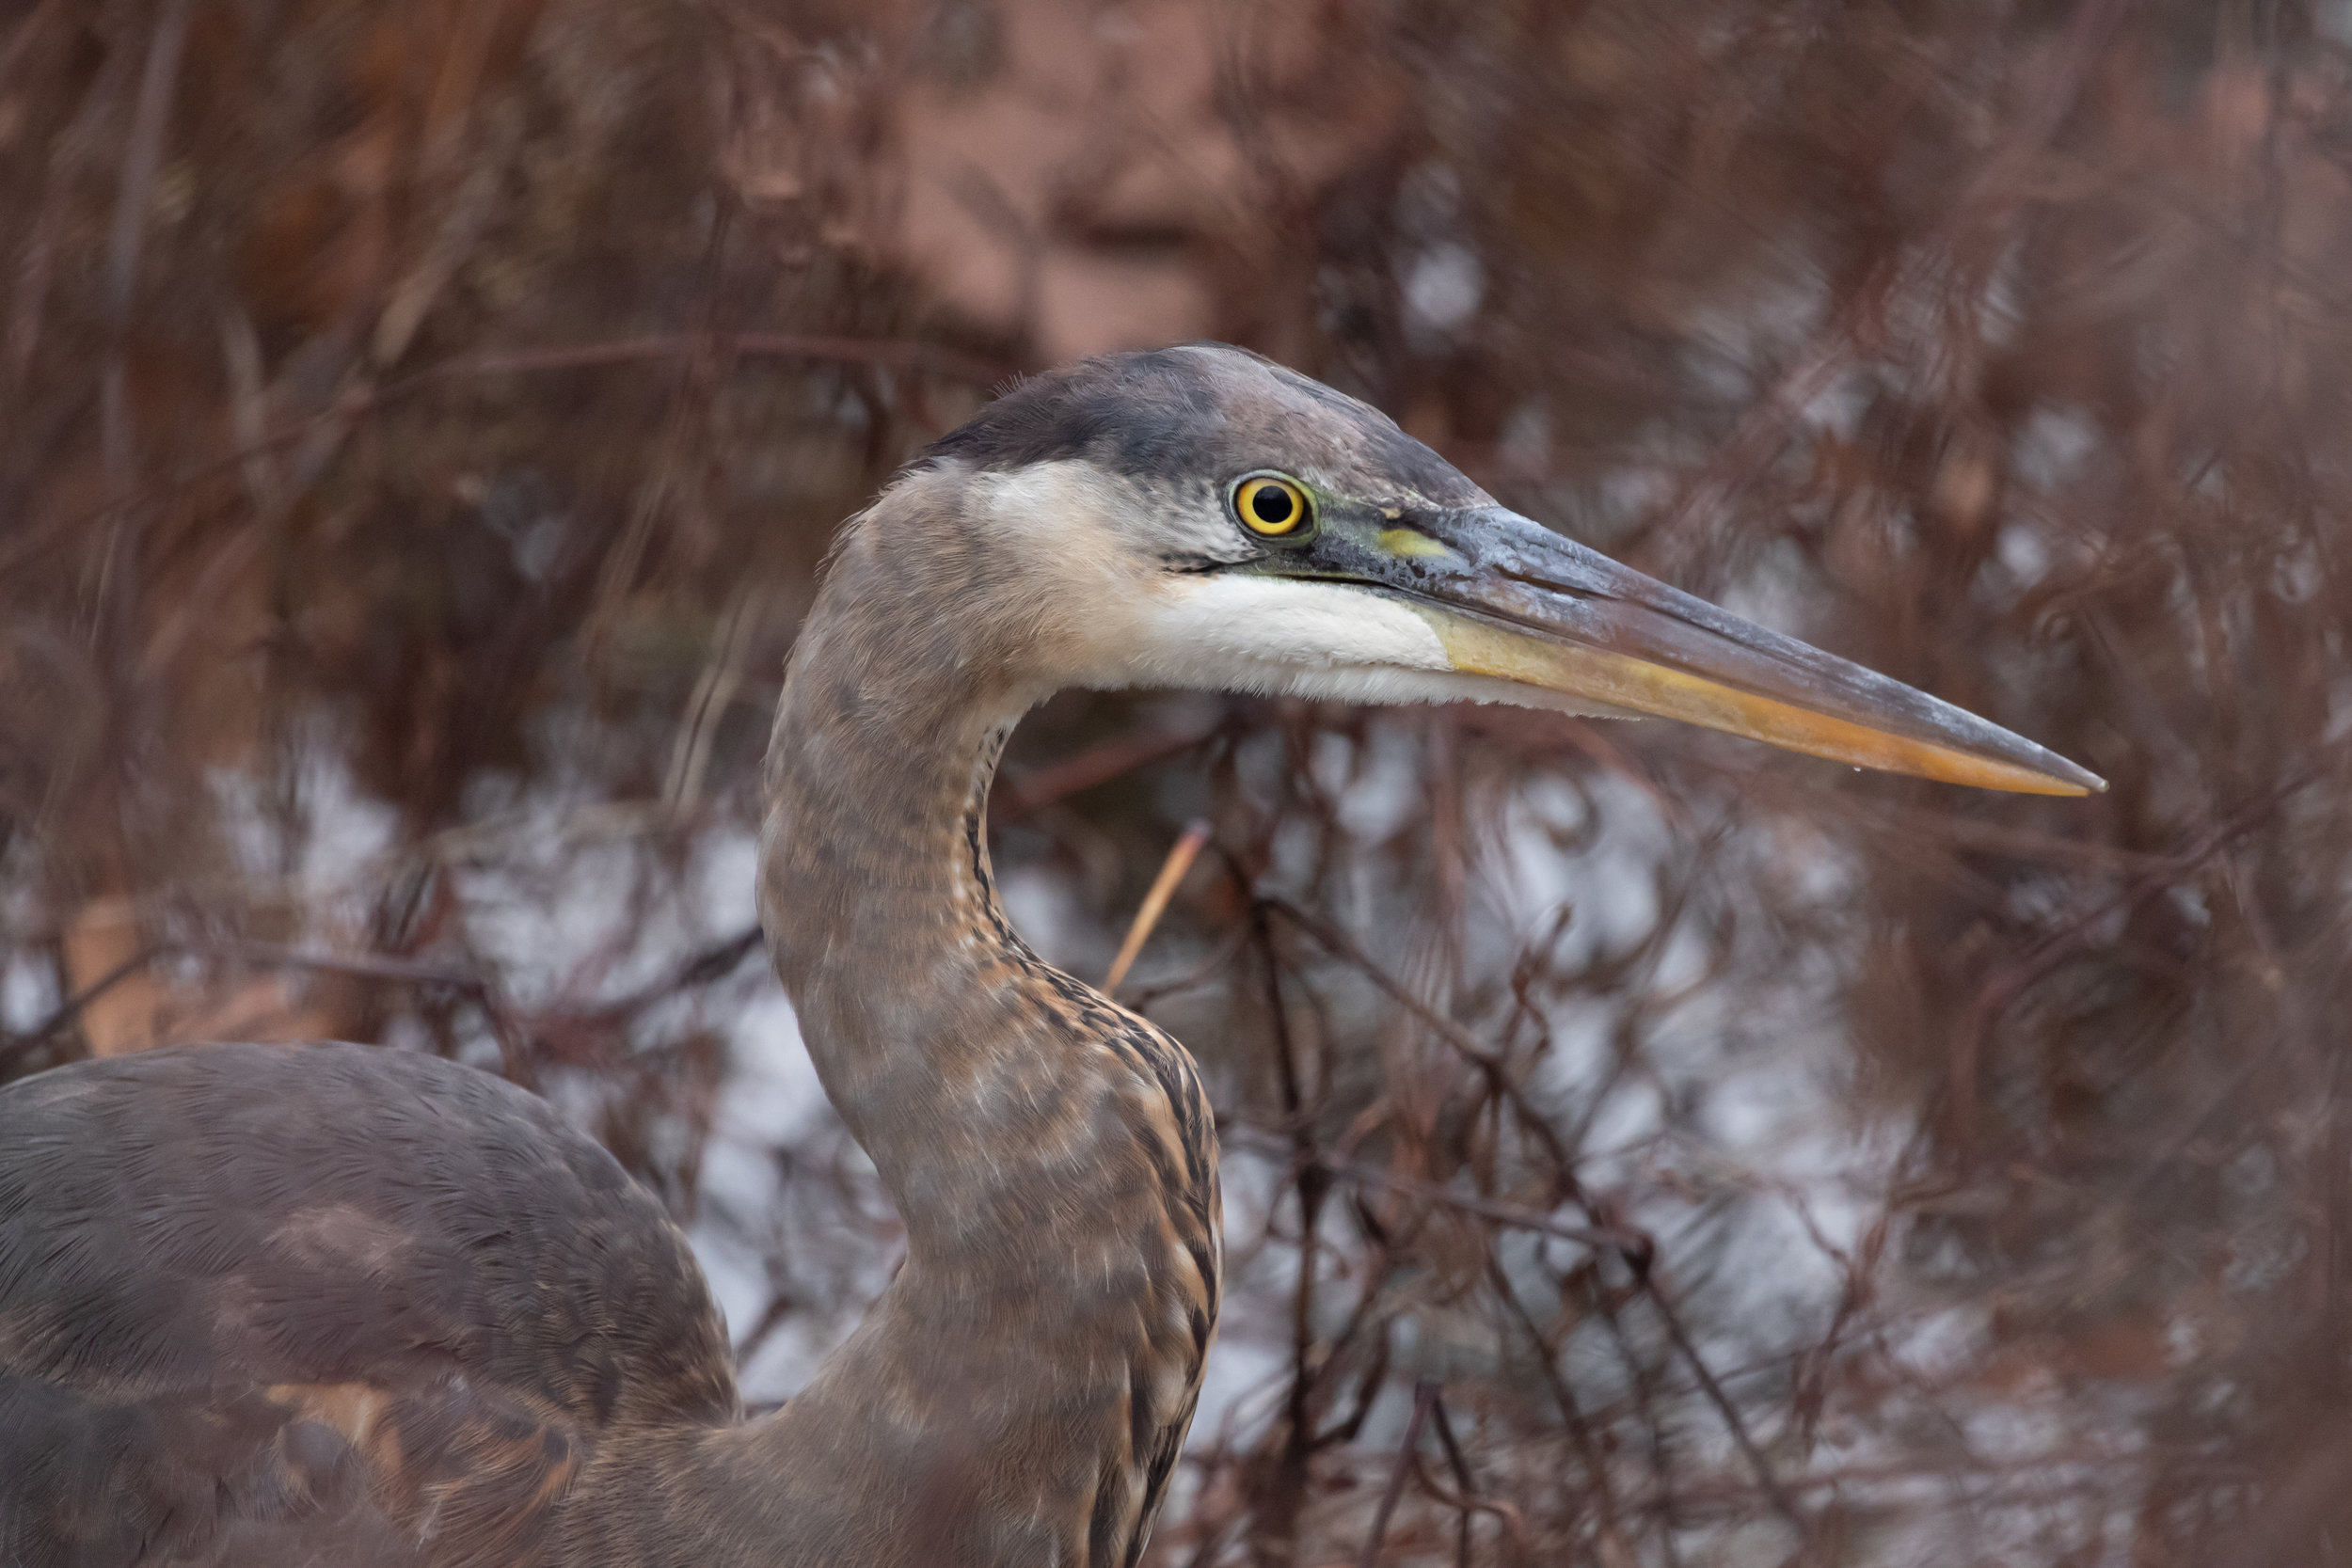 Great Blue Heron, December 15, 2018